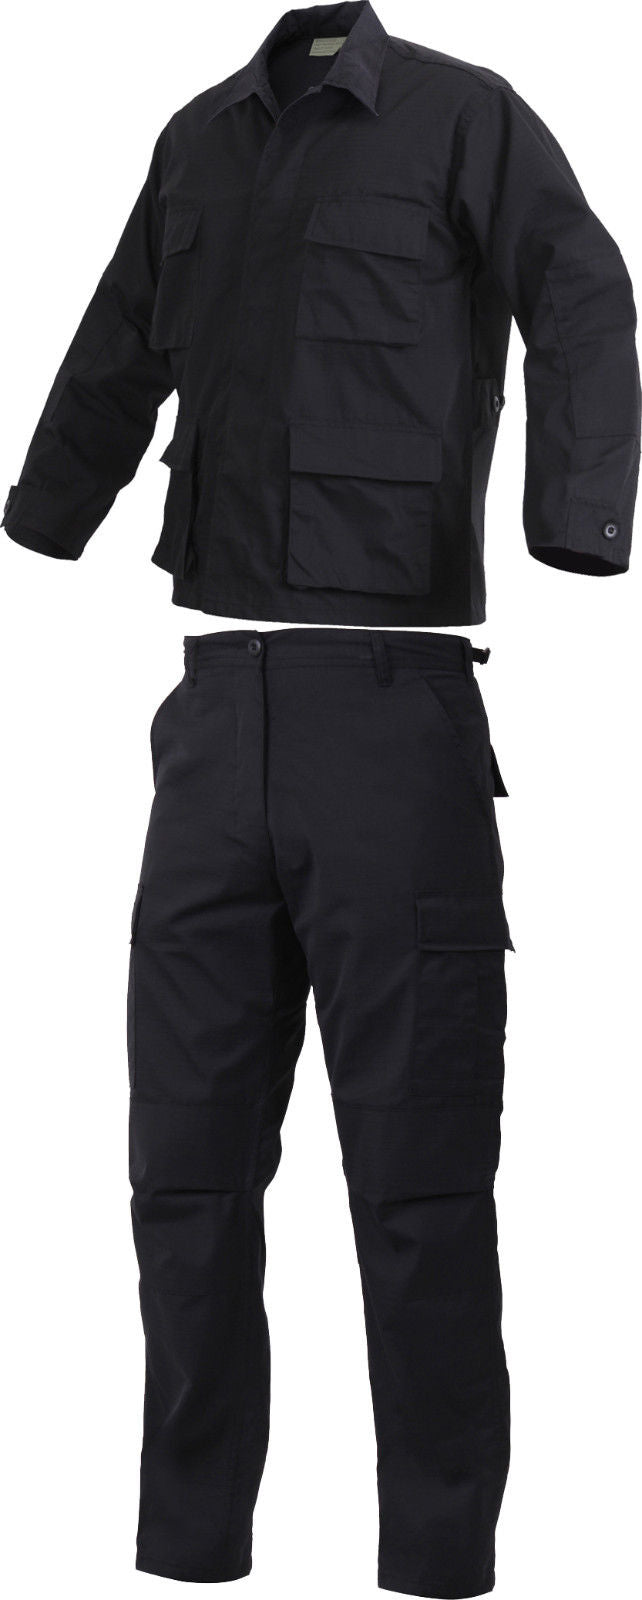 Black Law Enforcement SWAT Cloth Poly-Cotton Rip-Stop Cargo BDU Uniform